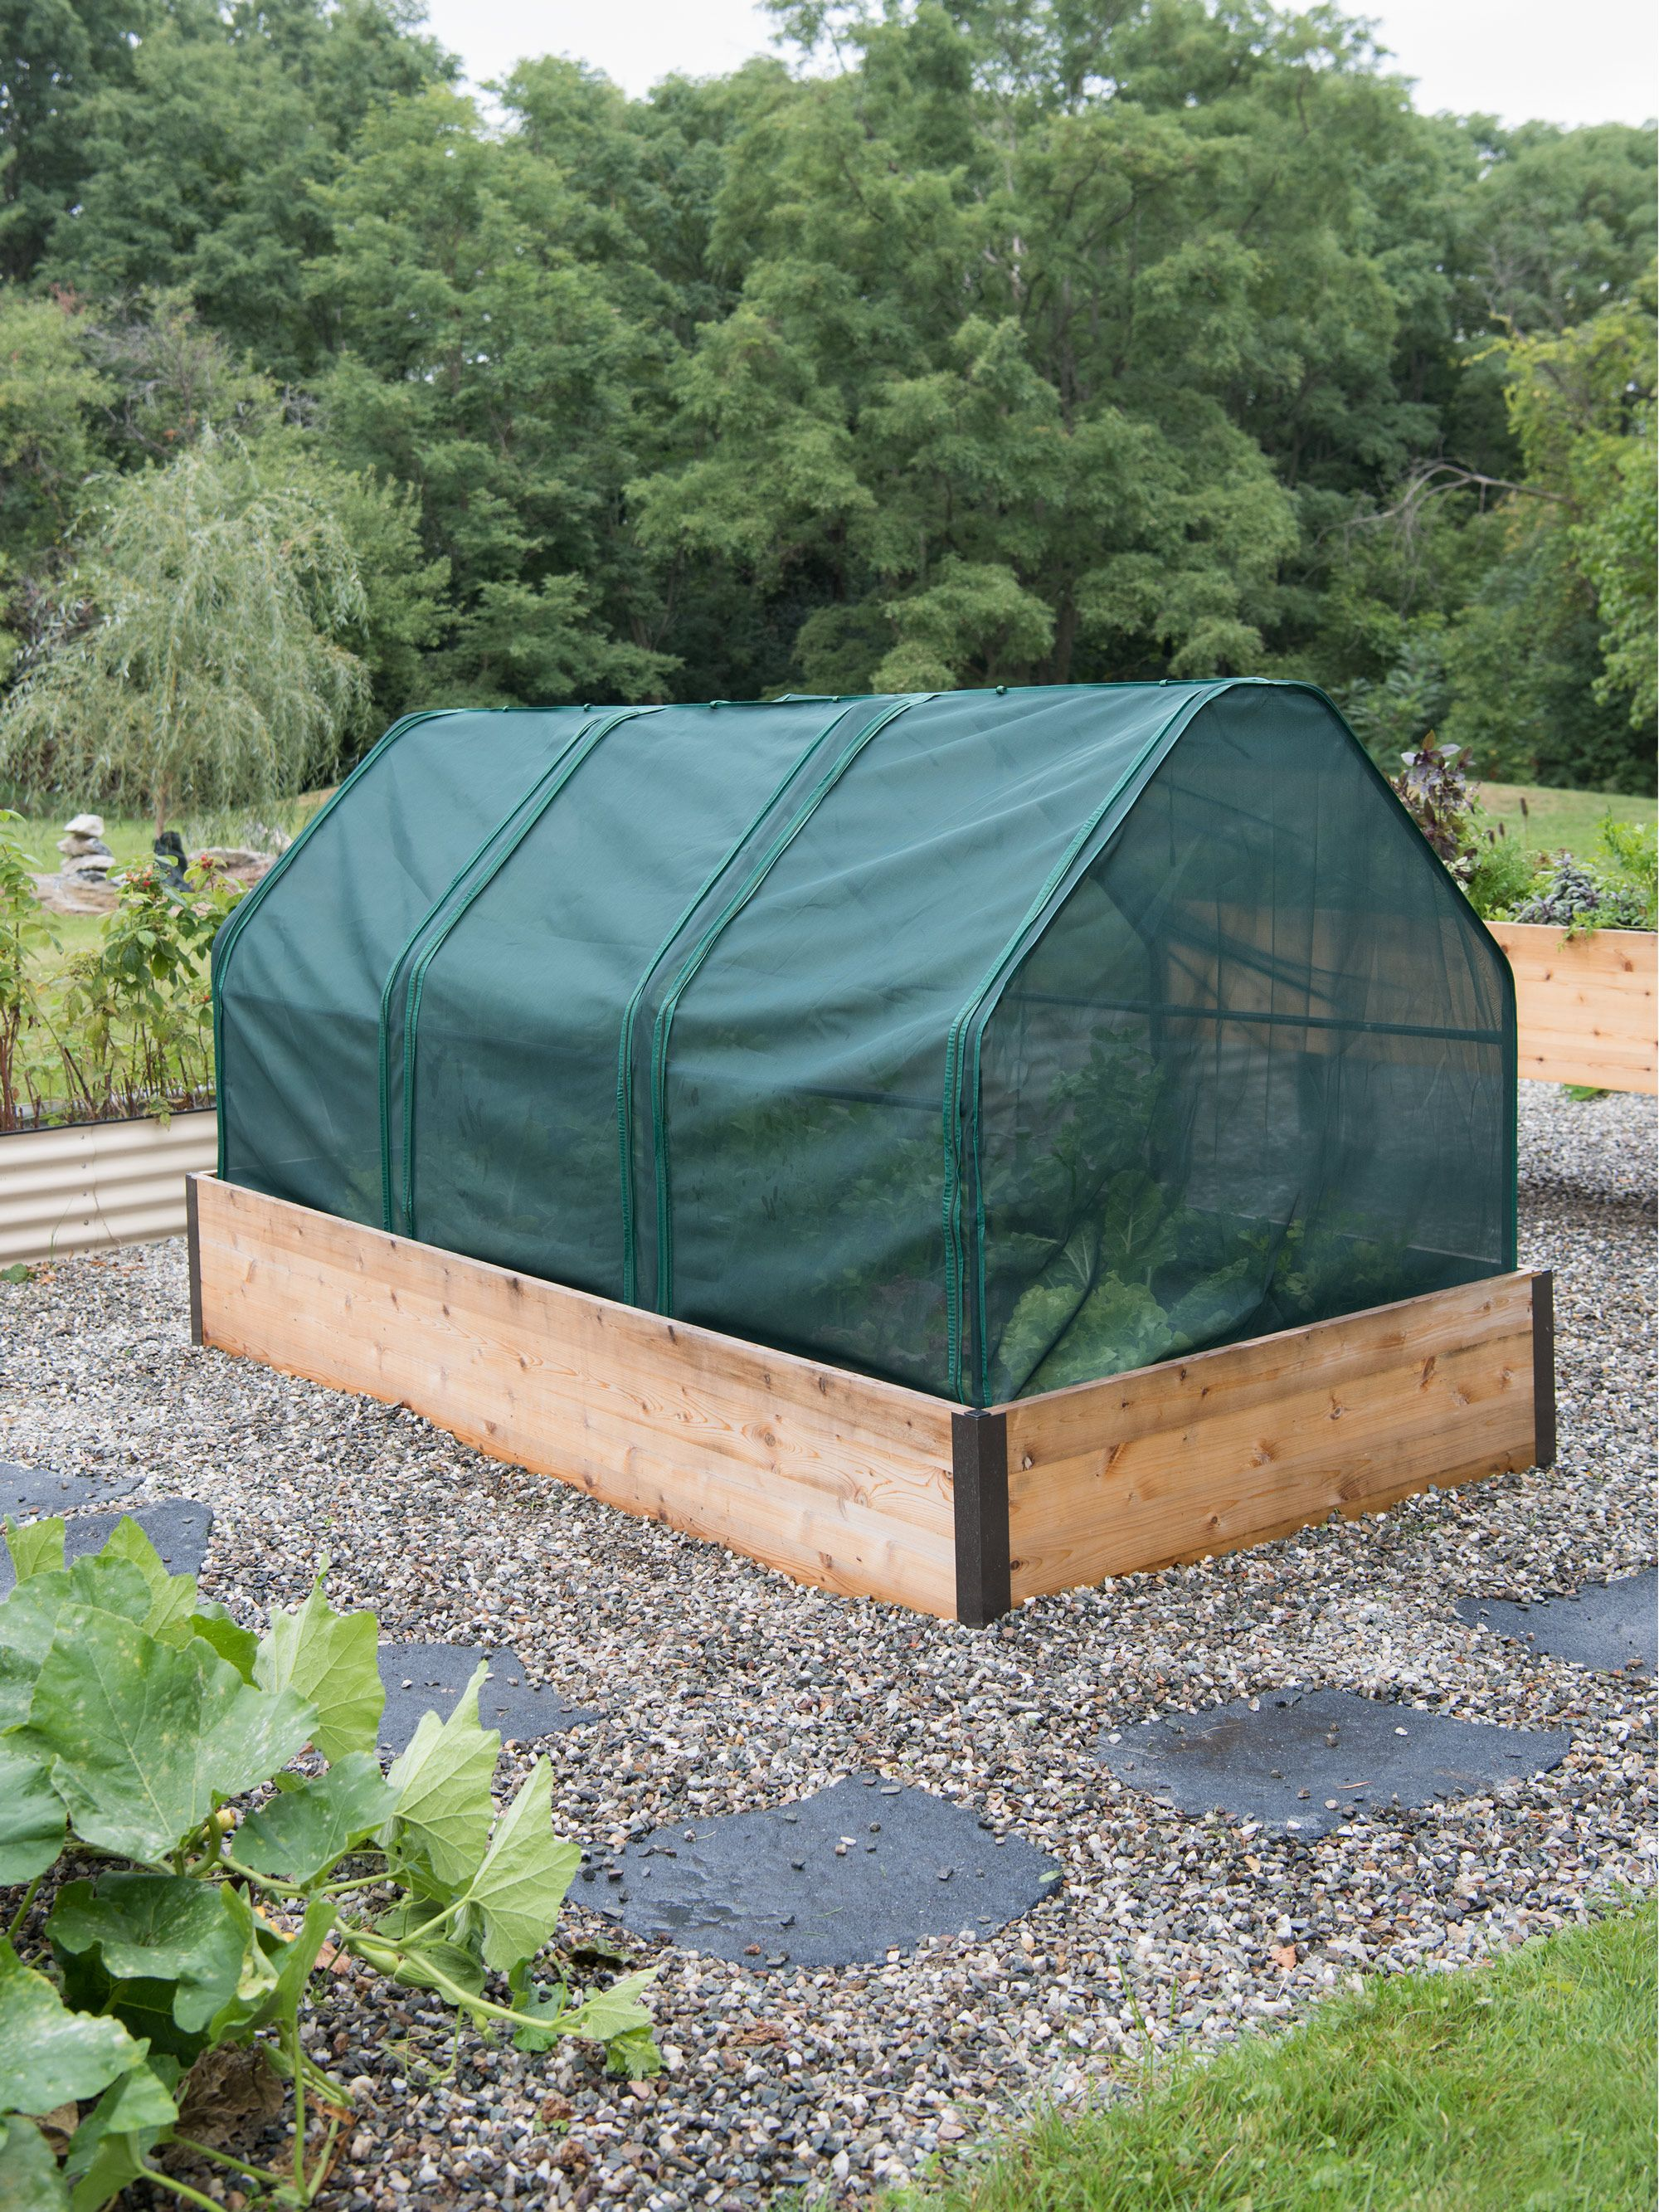 Gardenquilt Floating Row Cover Fabric Gardener S Supply With